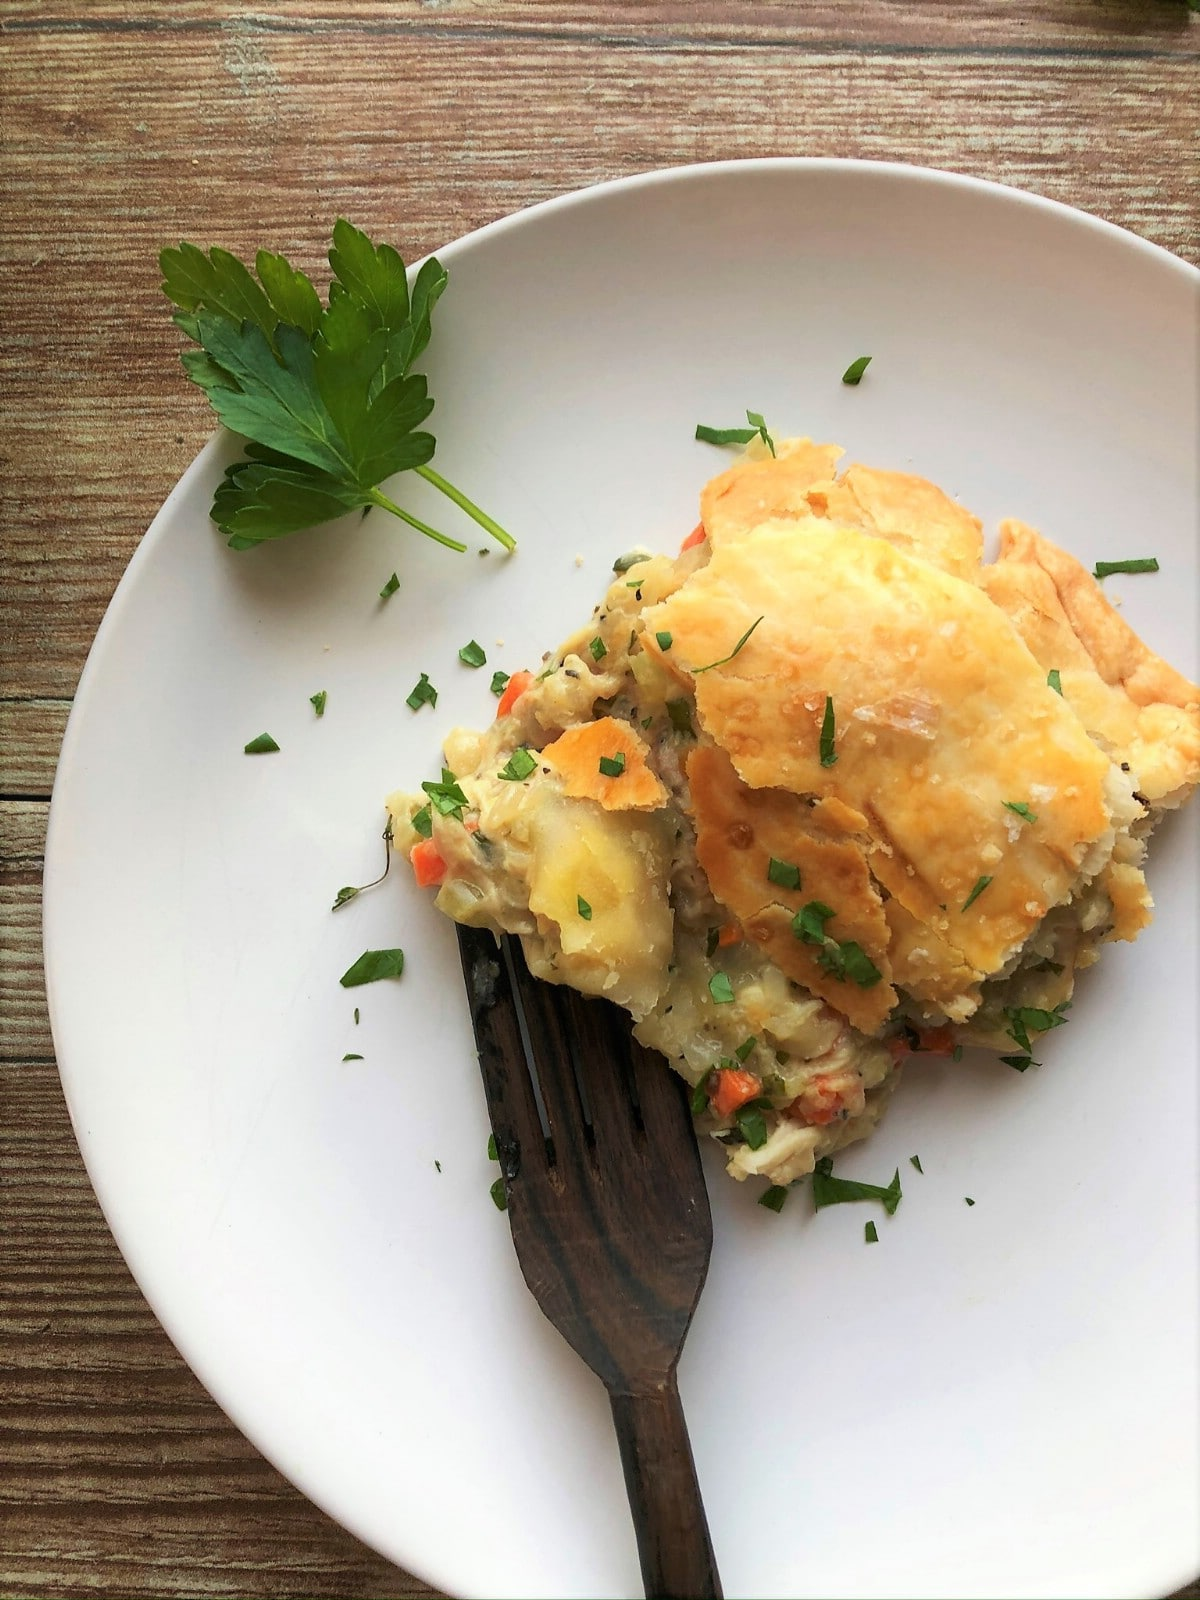 Chicken pot pie with herbs on white plate